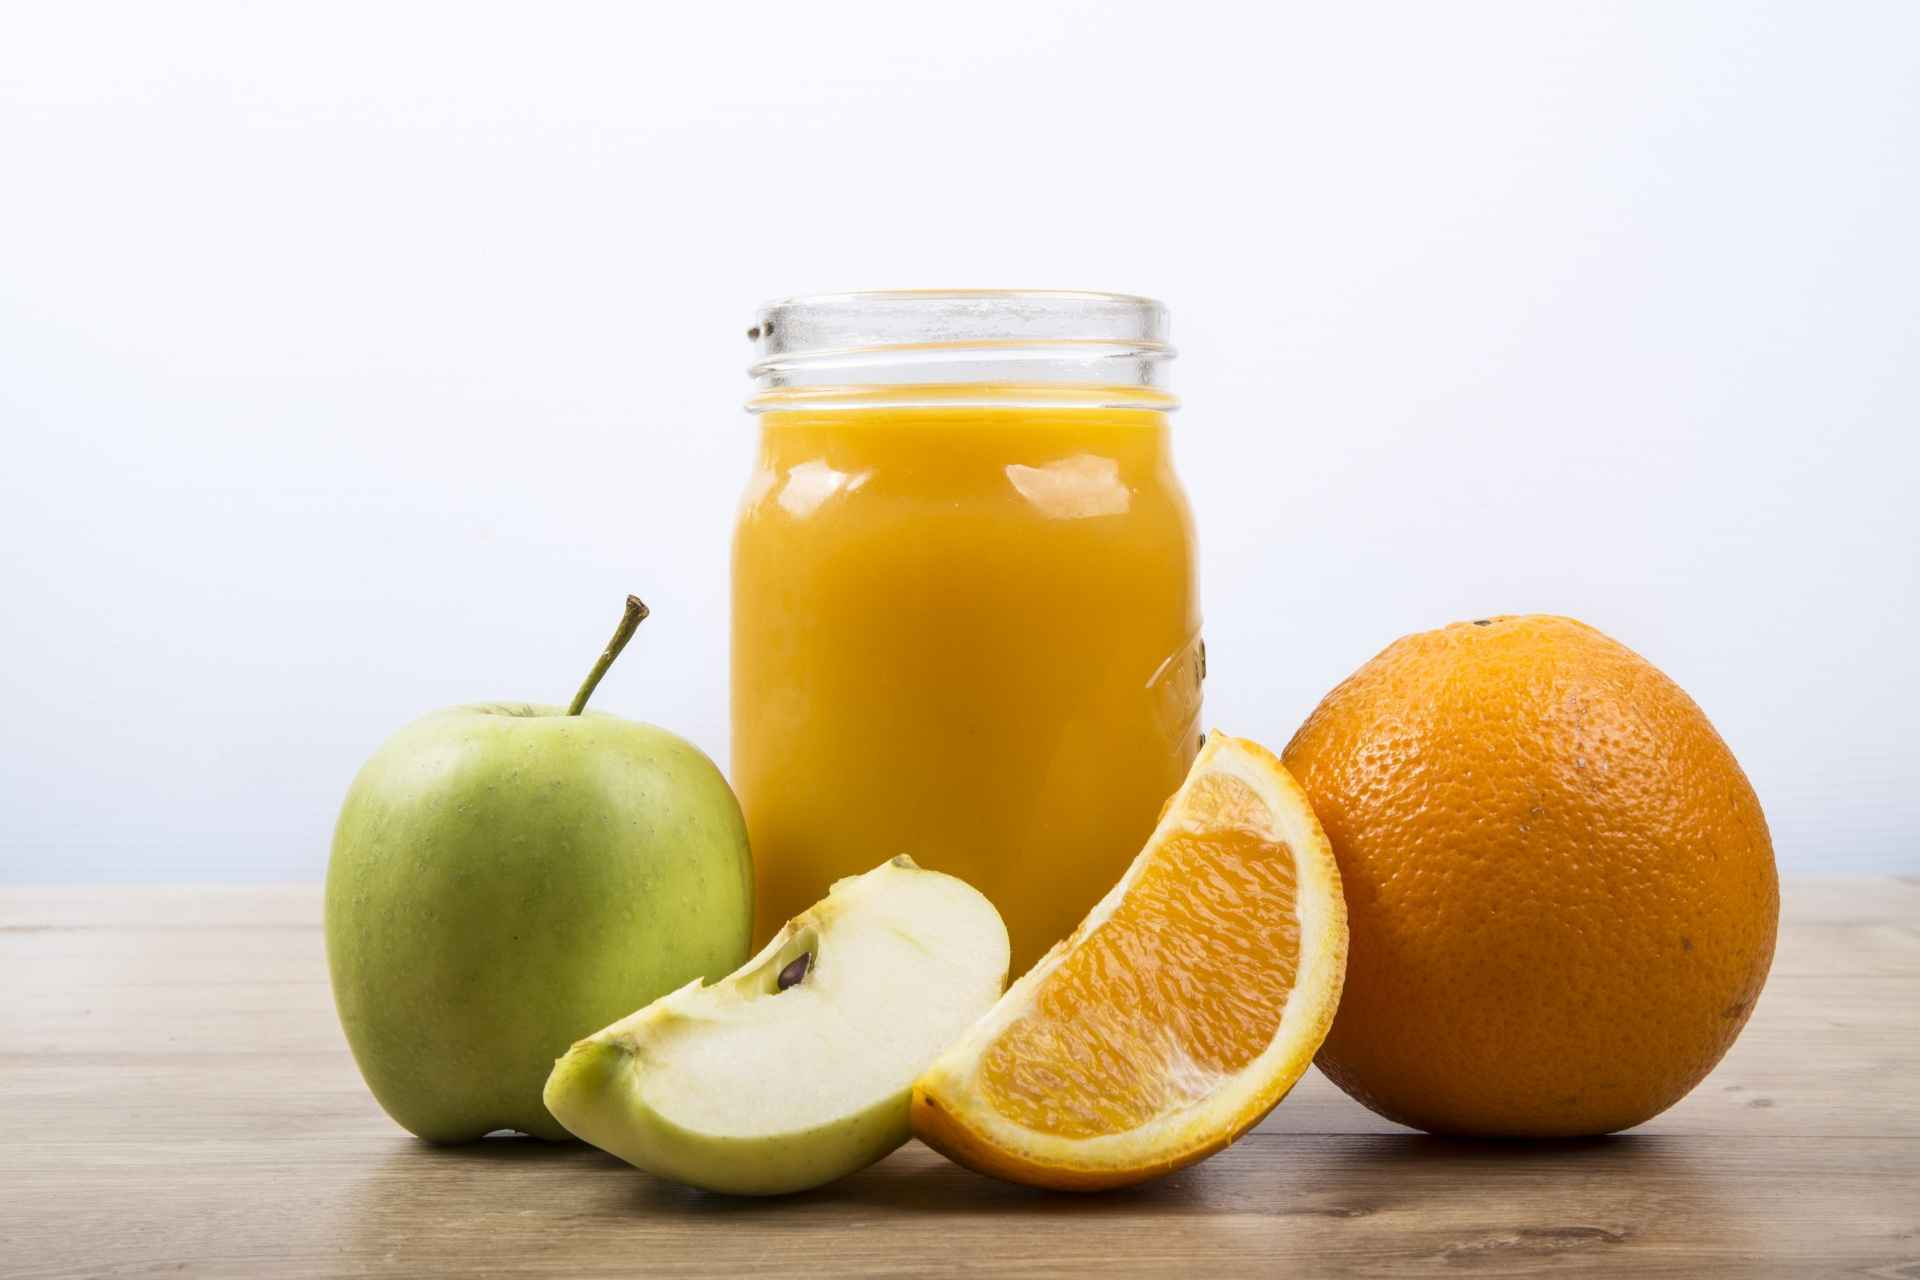 http://www.publicdomainpictures.net/view-image.php?image=189772&picture=orange-juice-and-apple-juice